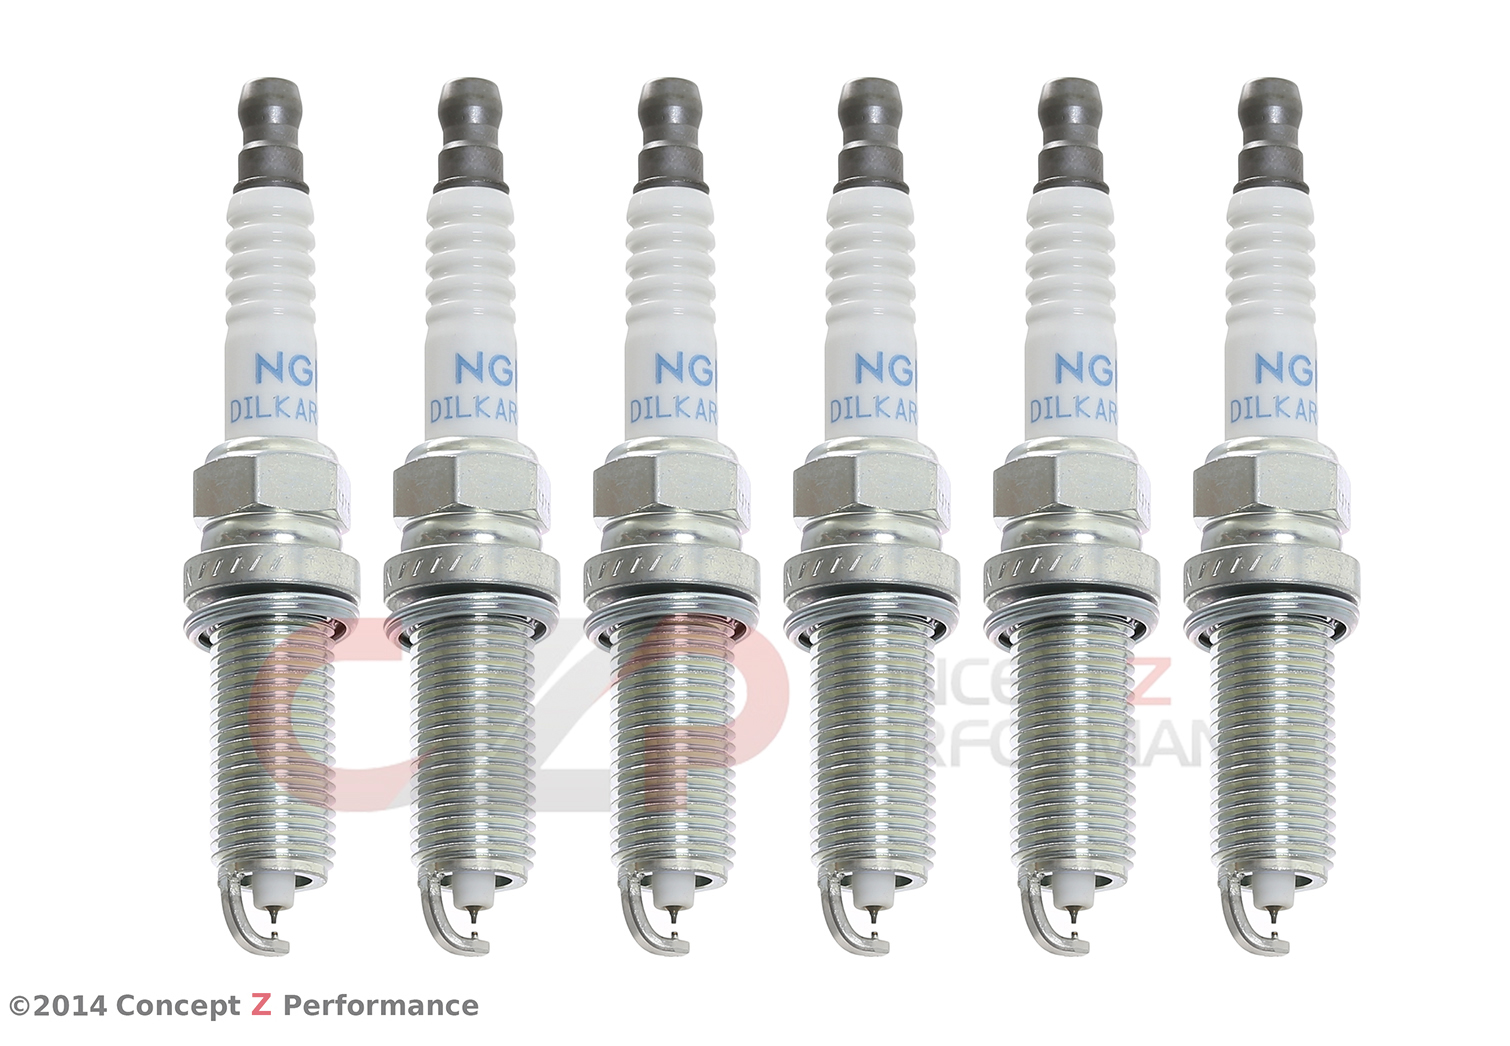 NGK 93026 DILKAR8A8 Iridium Spark Plug Set, Heat Rage #8 for Forced Induction Applications, VQ35HR VQ37VHR VR38DETT - Nissan 370Z GT-R / Infiniti G35 G37 Q40 Q60